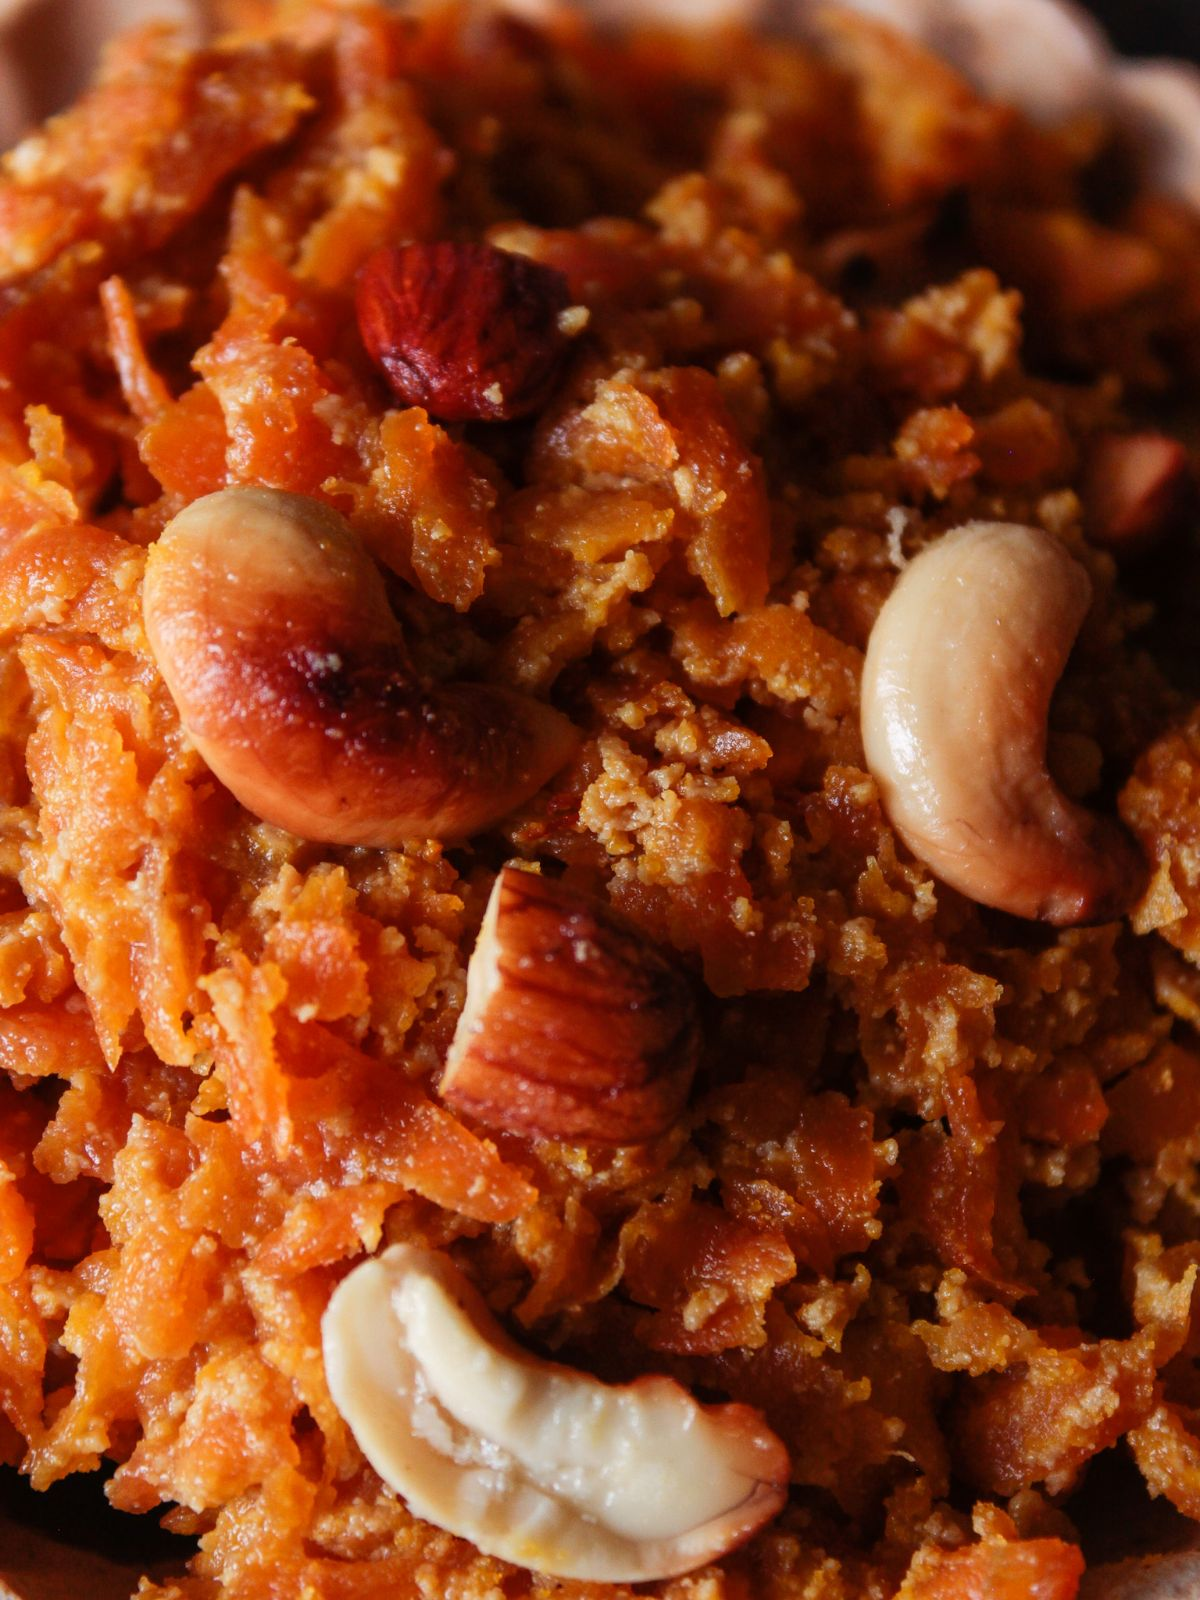 Close picture of shredded carrots topped with almond and cashew pieces